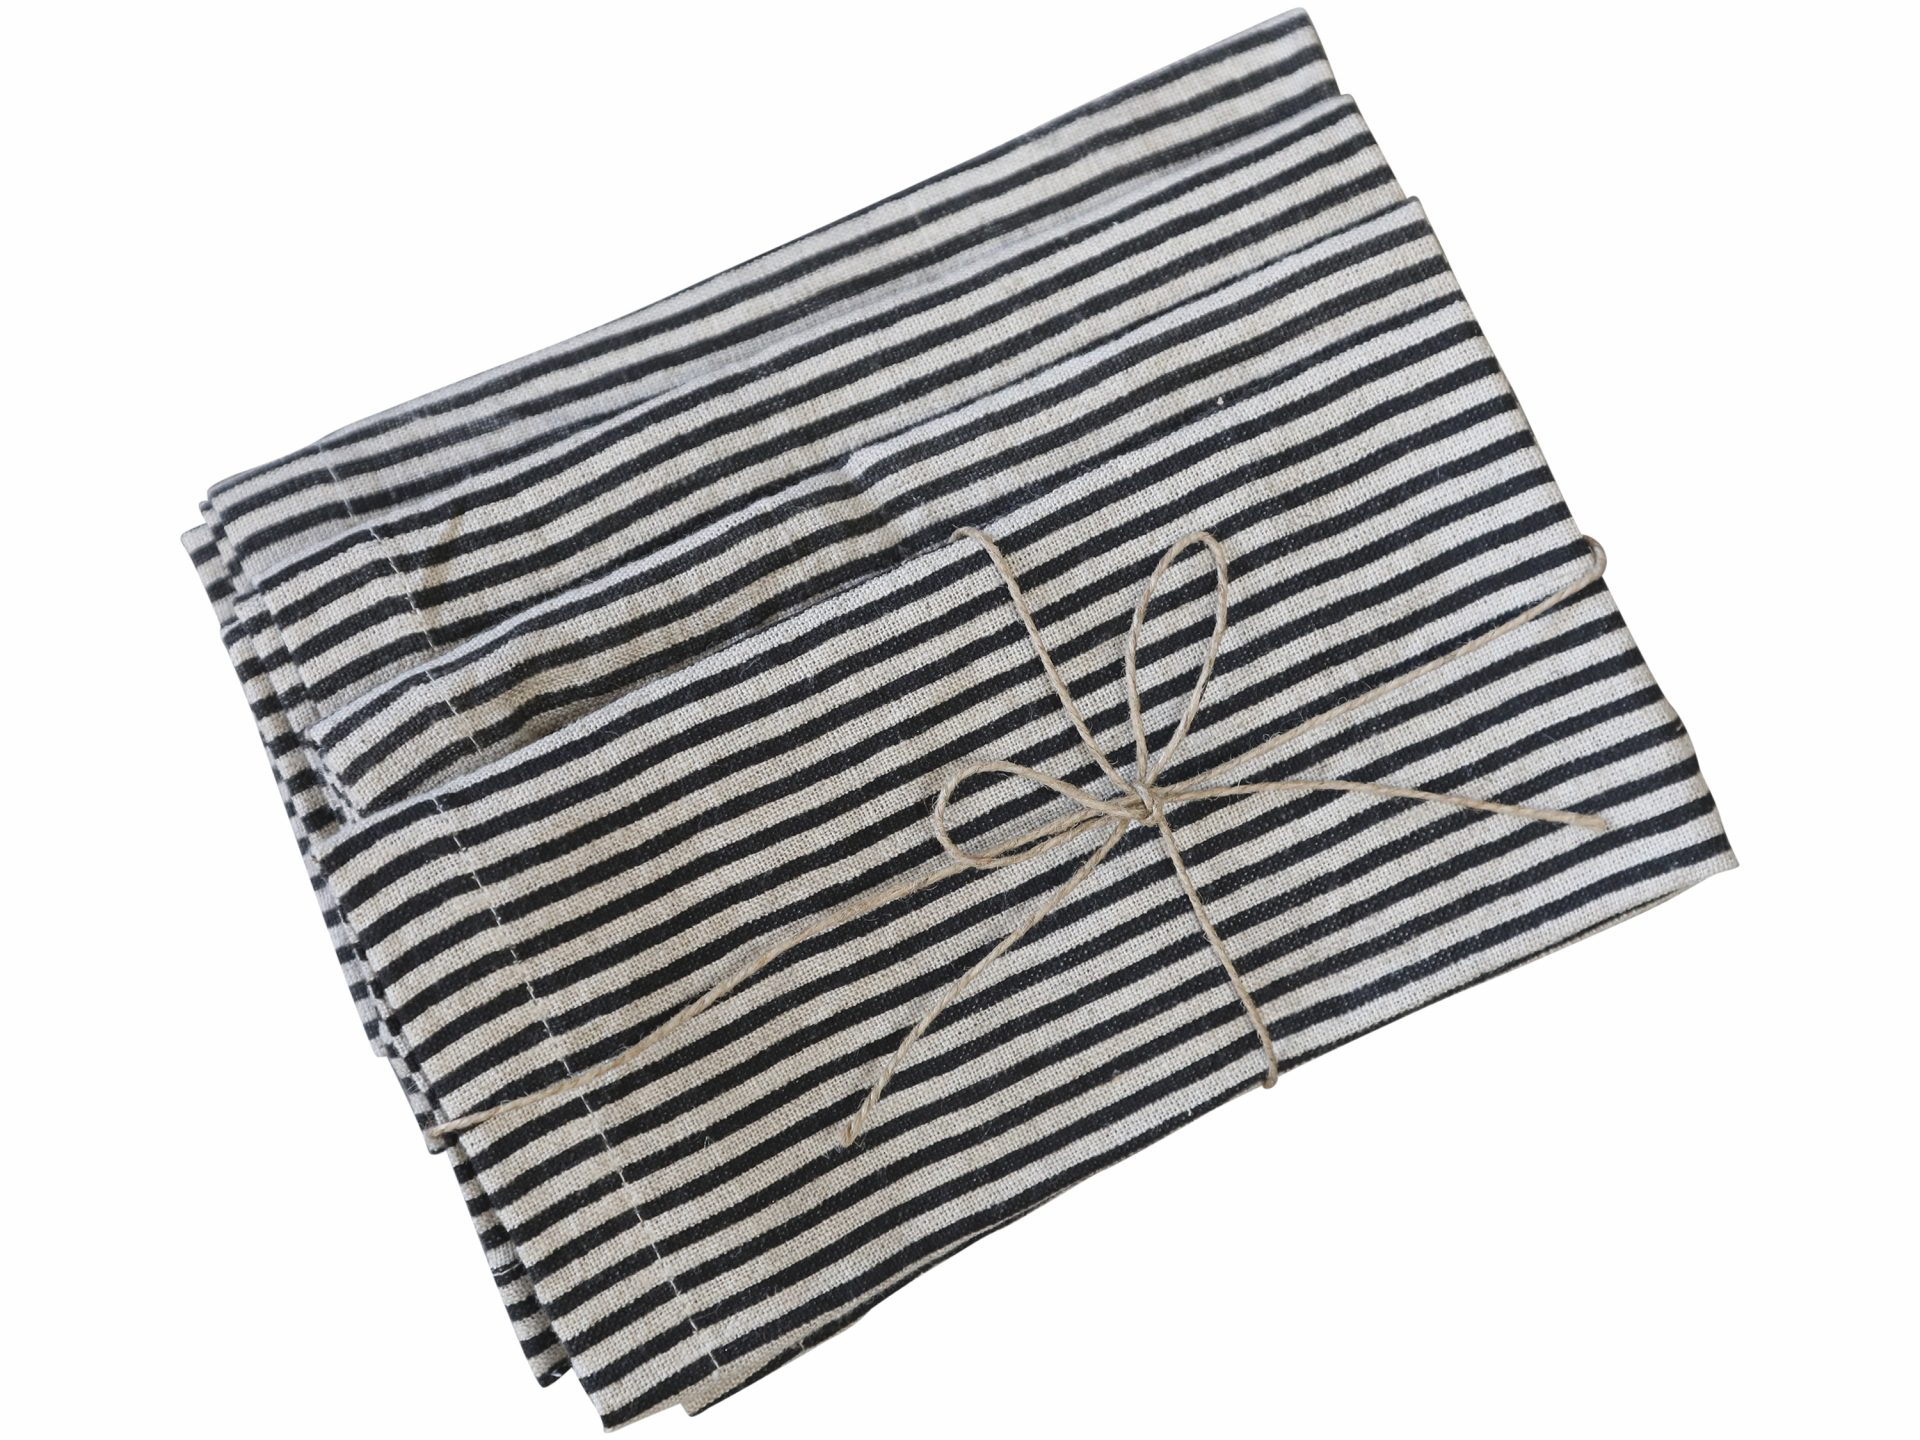 classic striped napkins, set of four, navy and beige